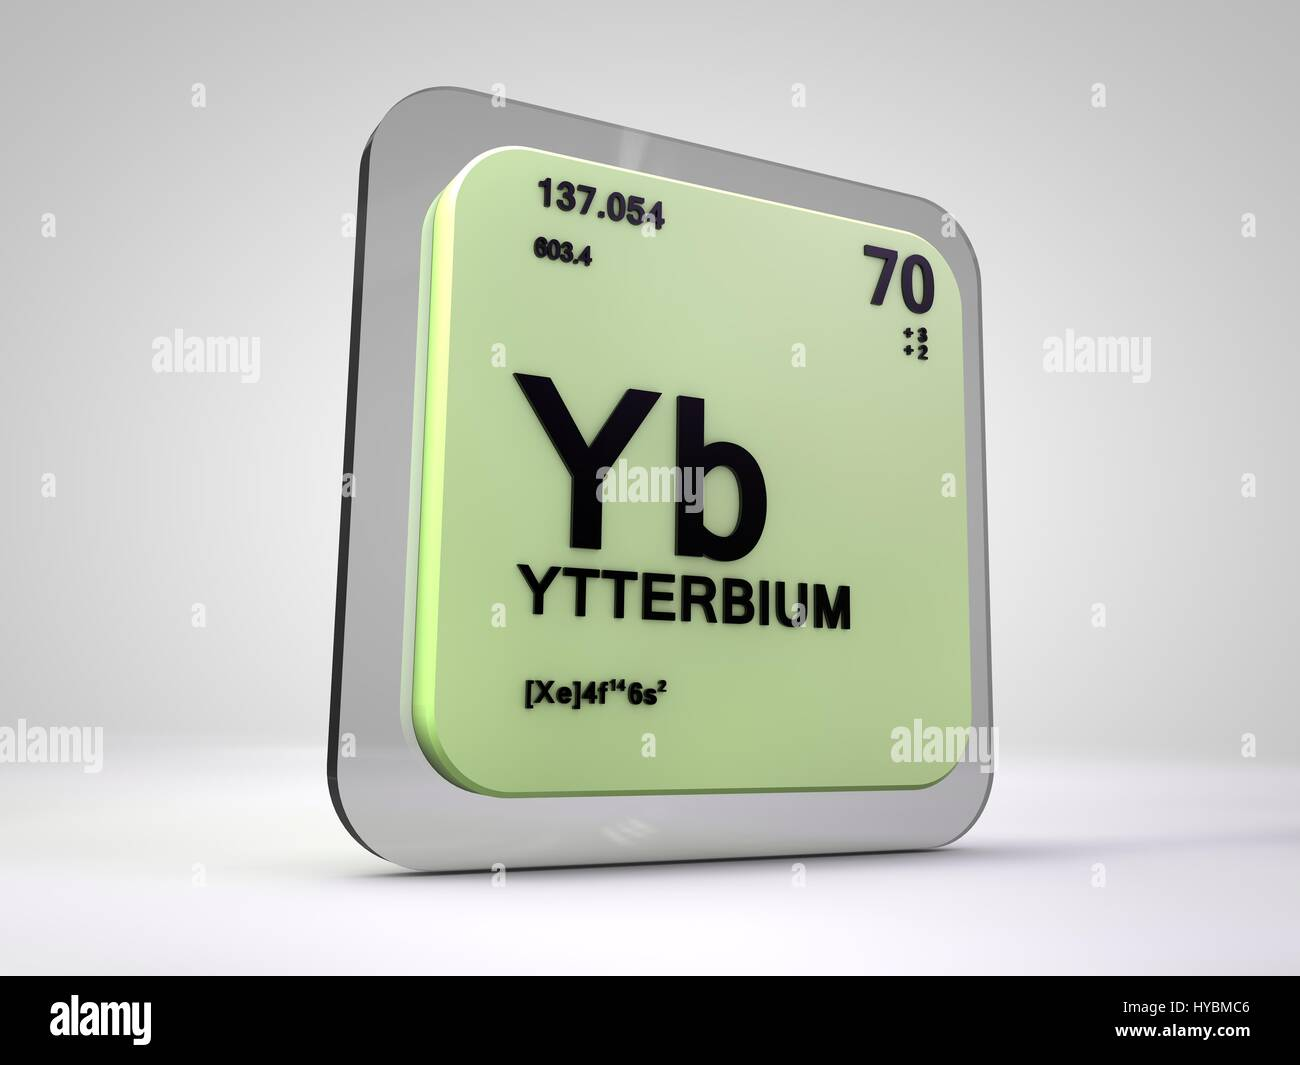 Ytterbium yb chemical element periodic table 3d render stock ytterbium yb chemical element periodic table 3d render urtaz Gallery